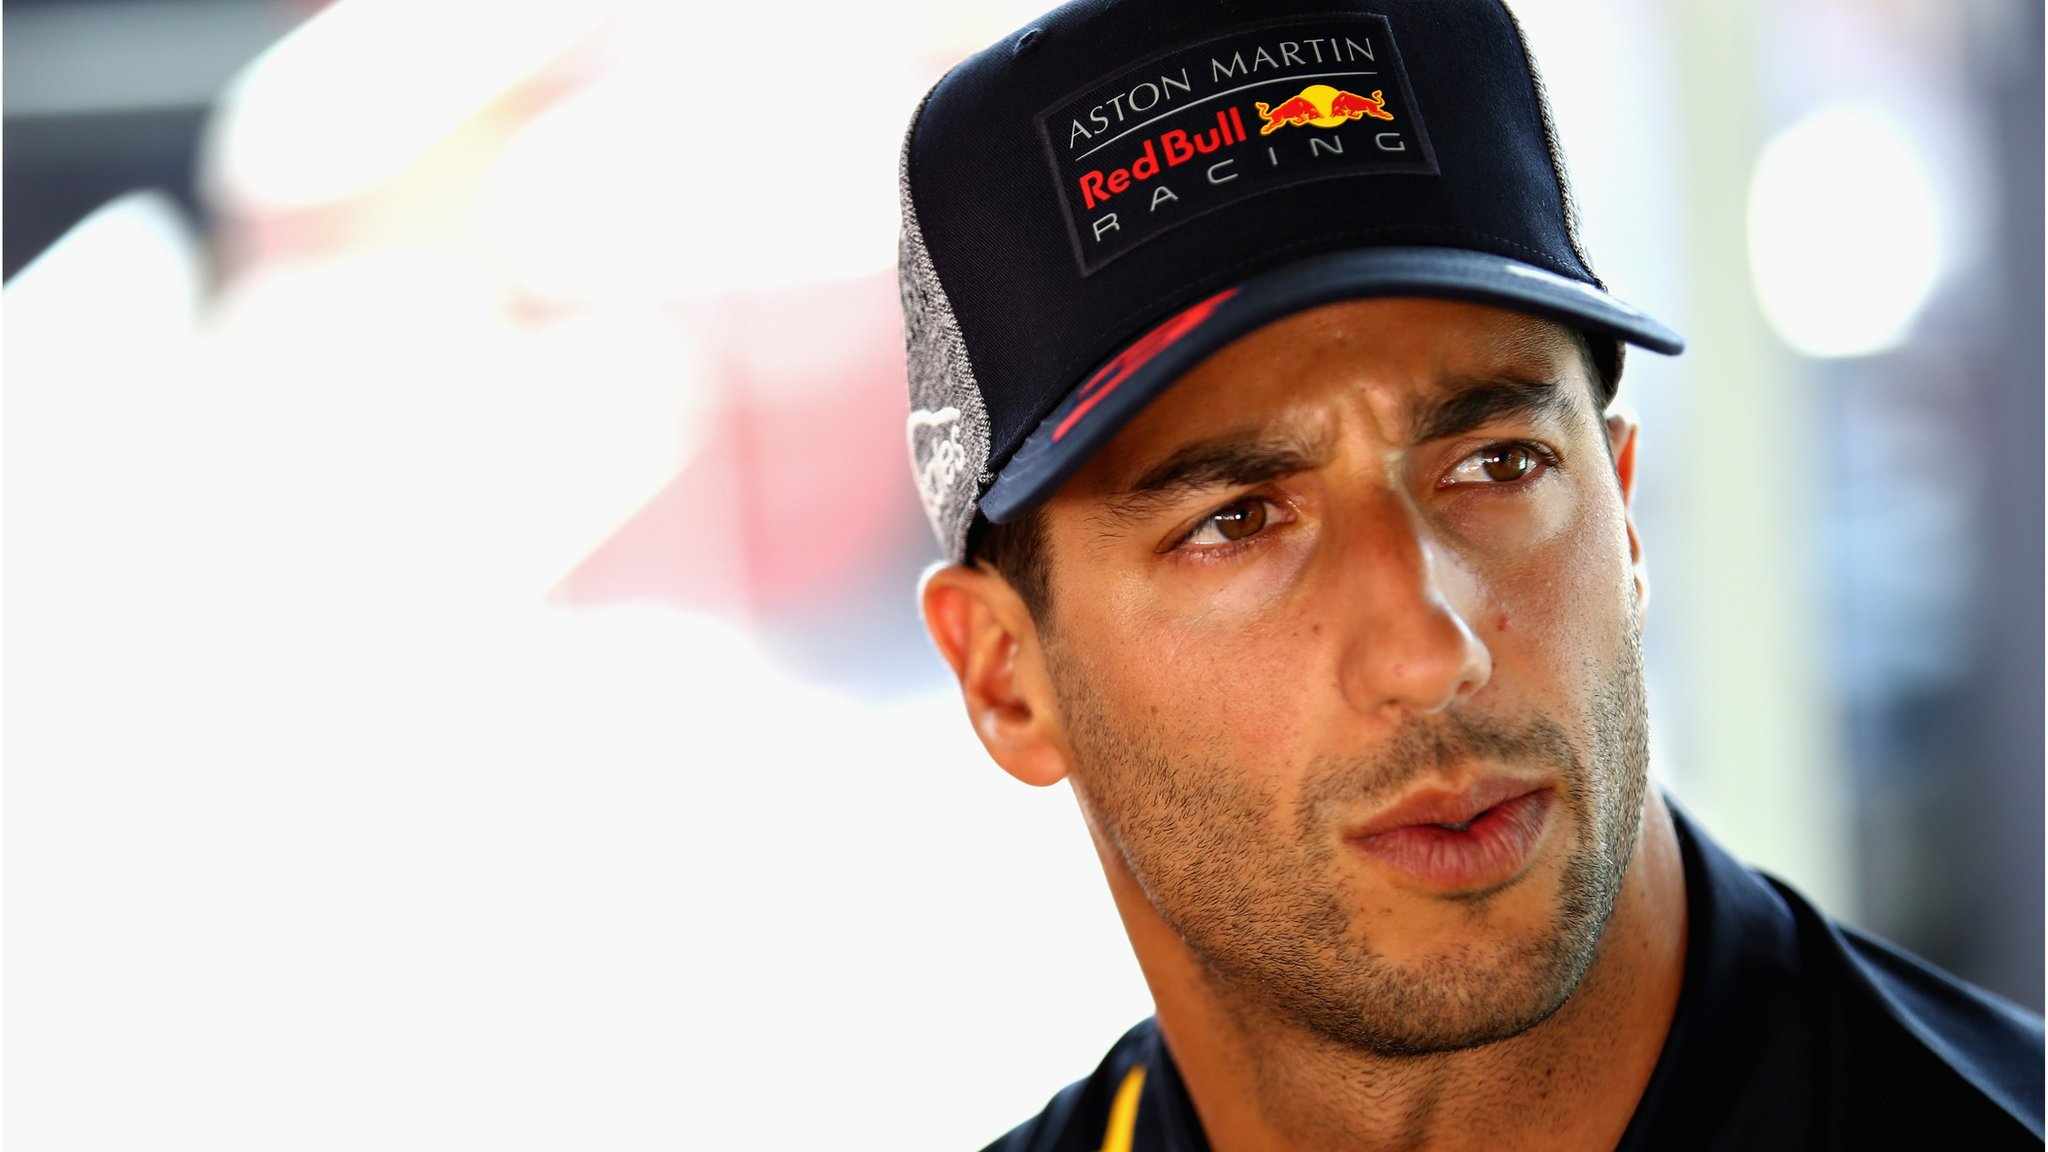 Ricciardo to start last at German GP after penalties